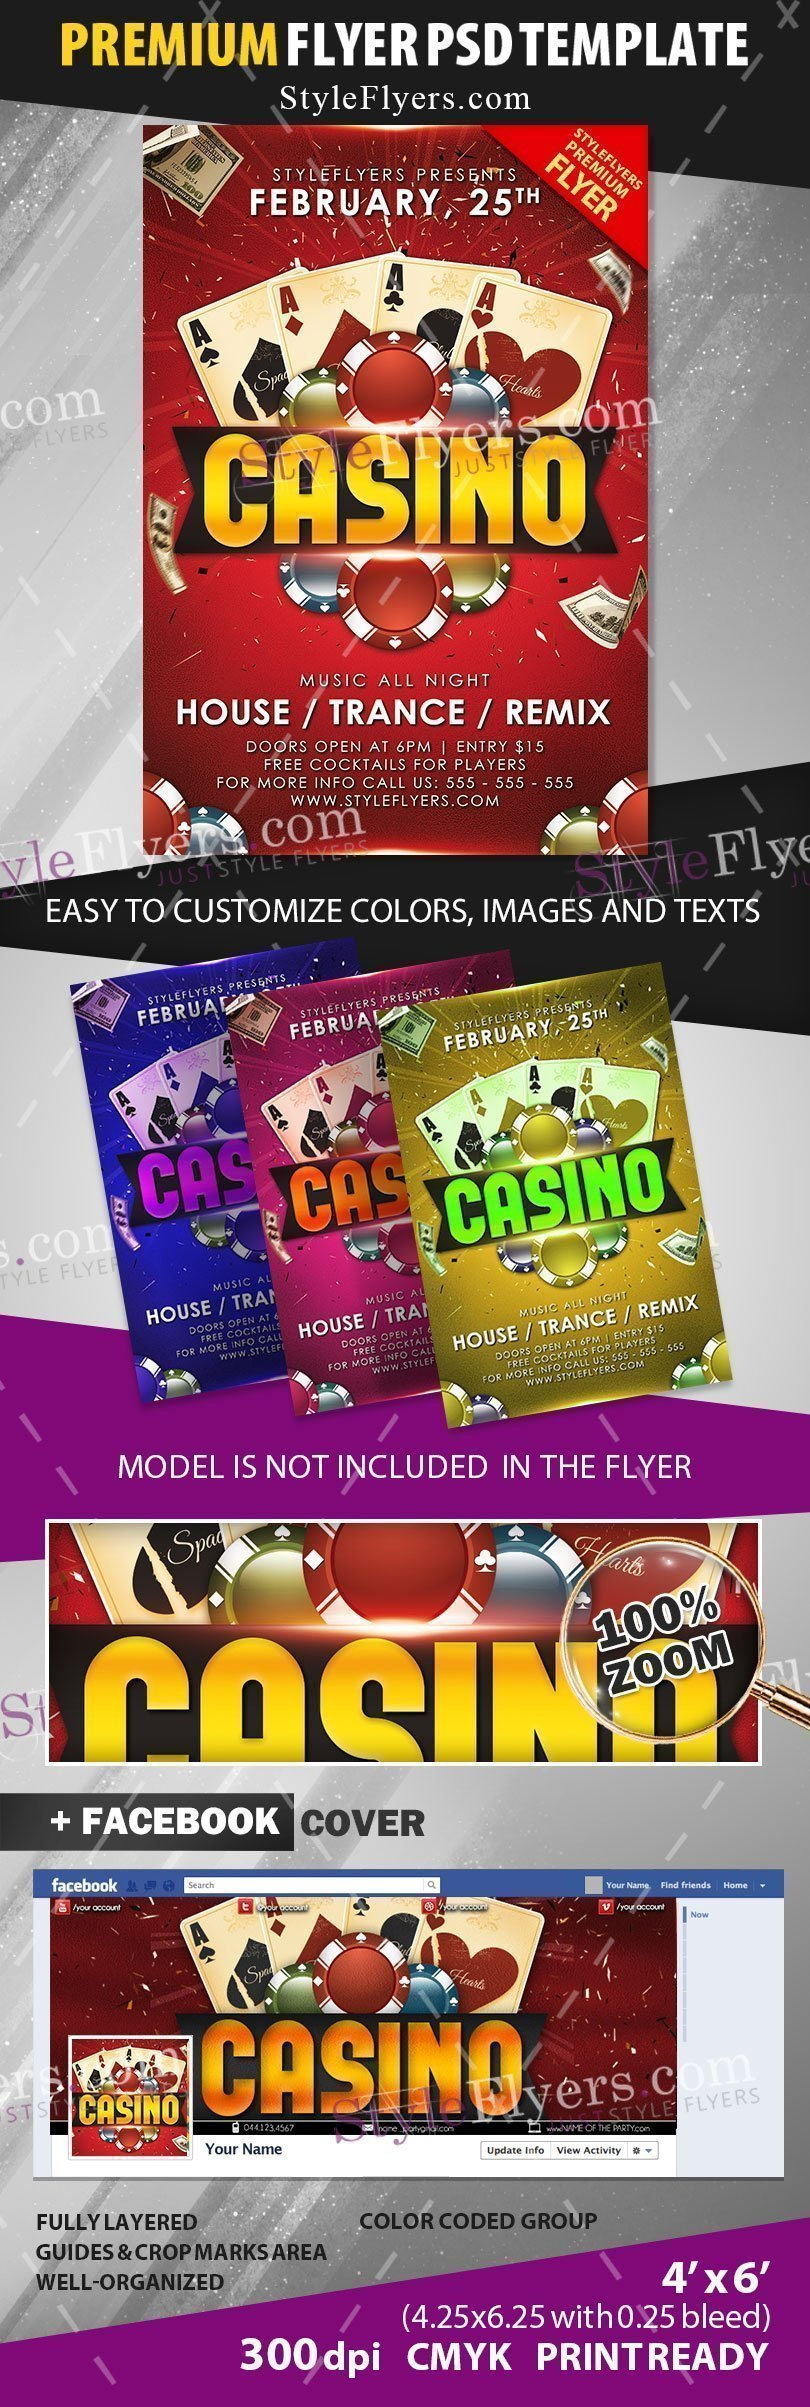 preview_Casino_Flyer_premium_template